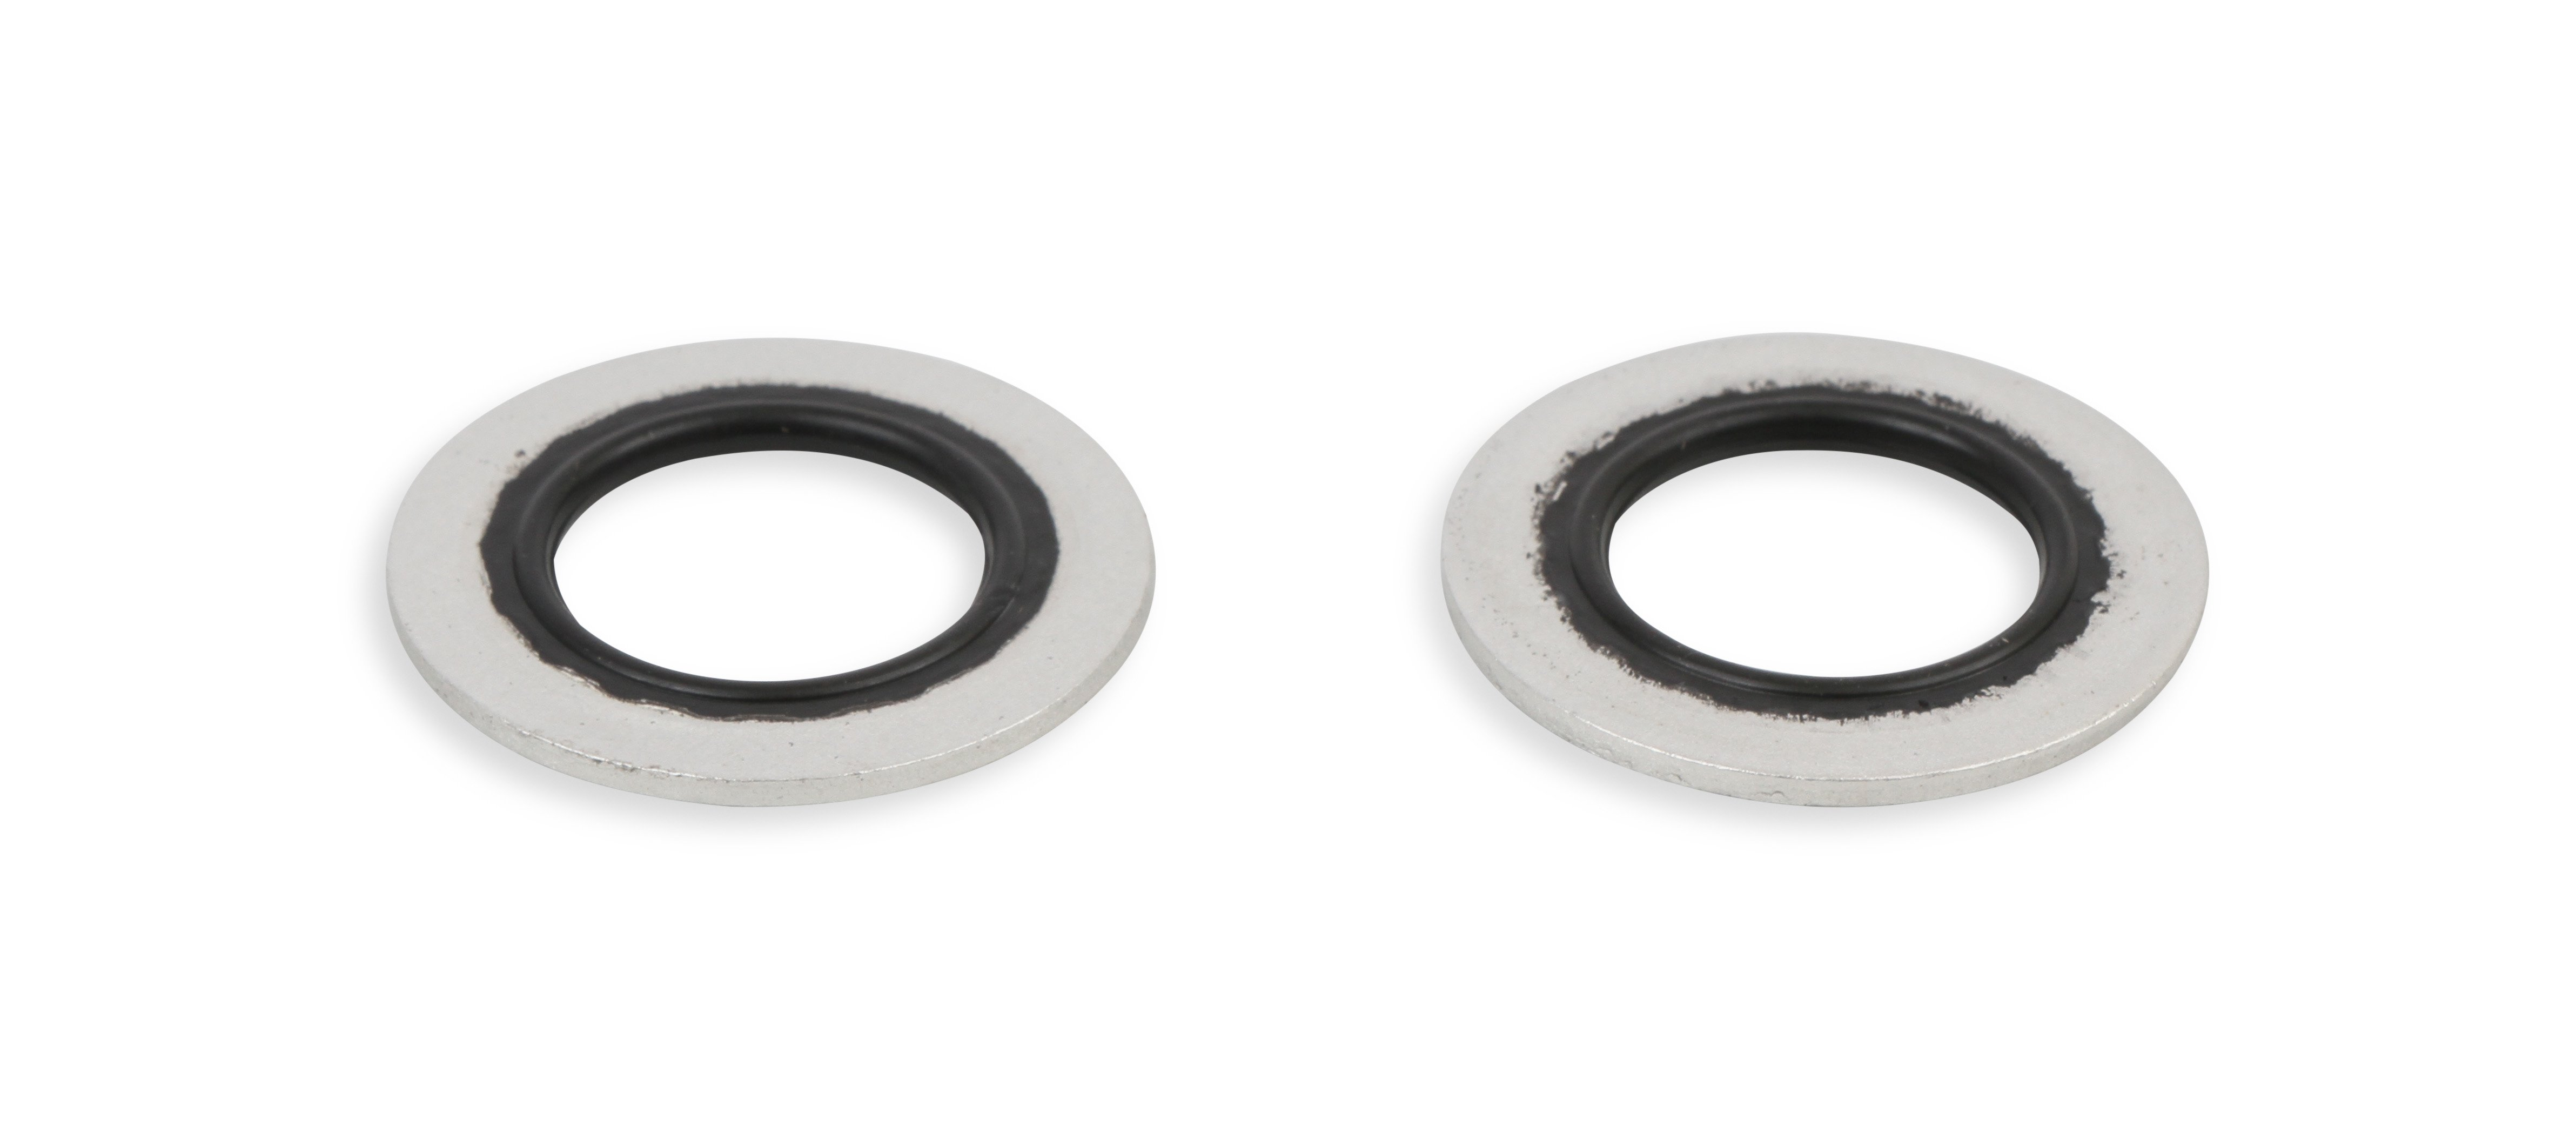 1//2 I.D. Package Of 2 Earls 178008ERL Stat-O-Seal Fits 5 an Fitting